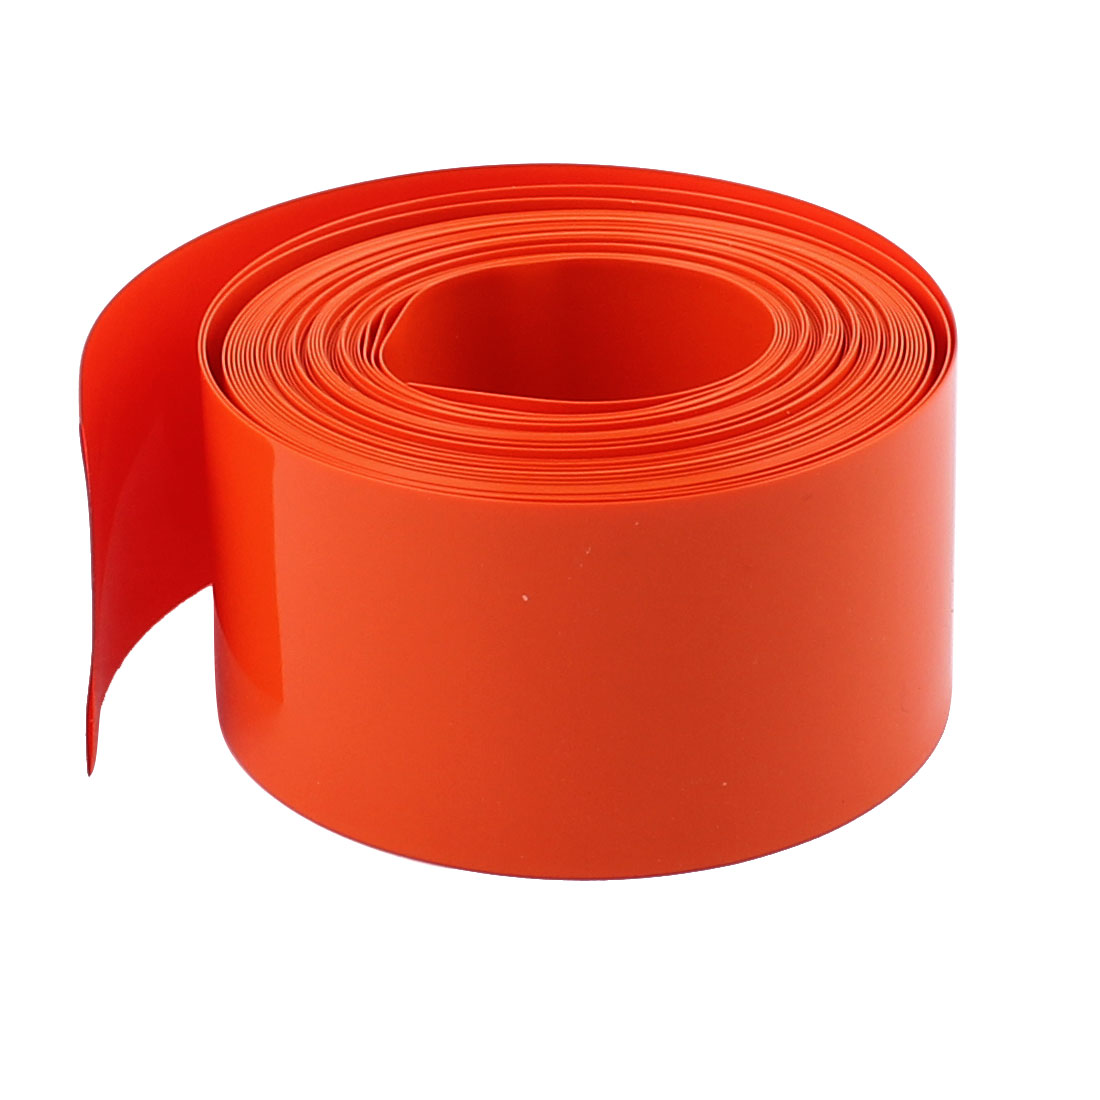 18.5mm Dia PVC Heat Shrinkable Tube Battery Protective Casing Orange 16ft Length